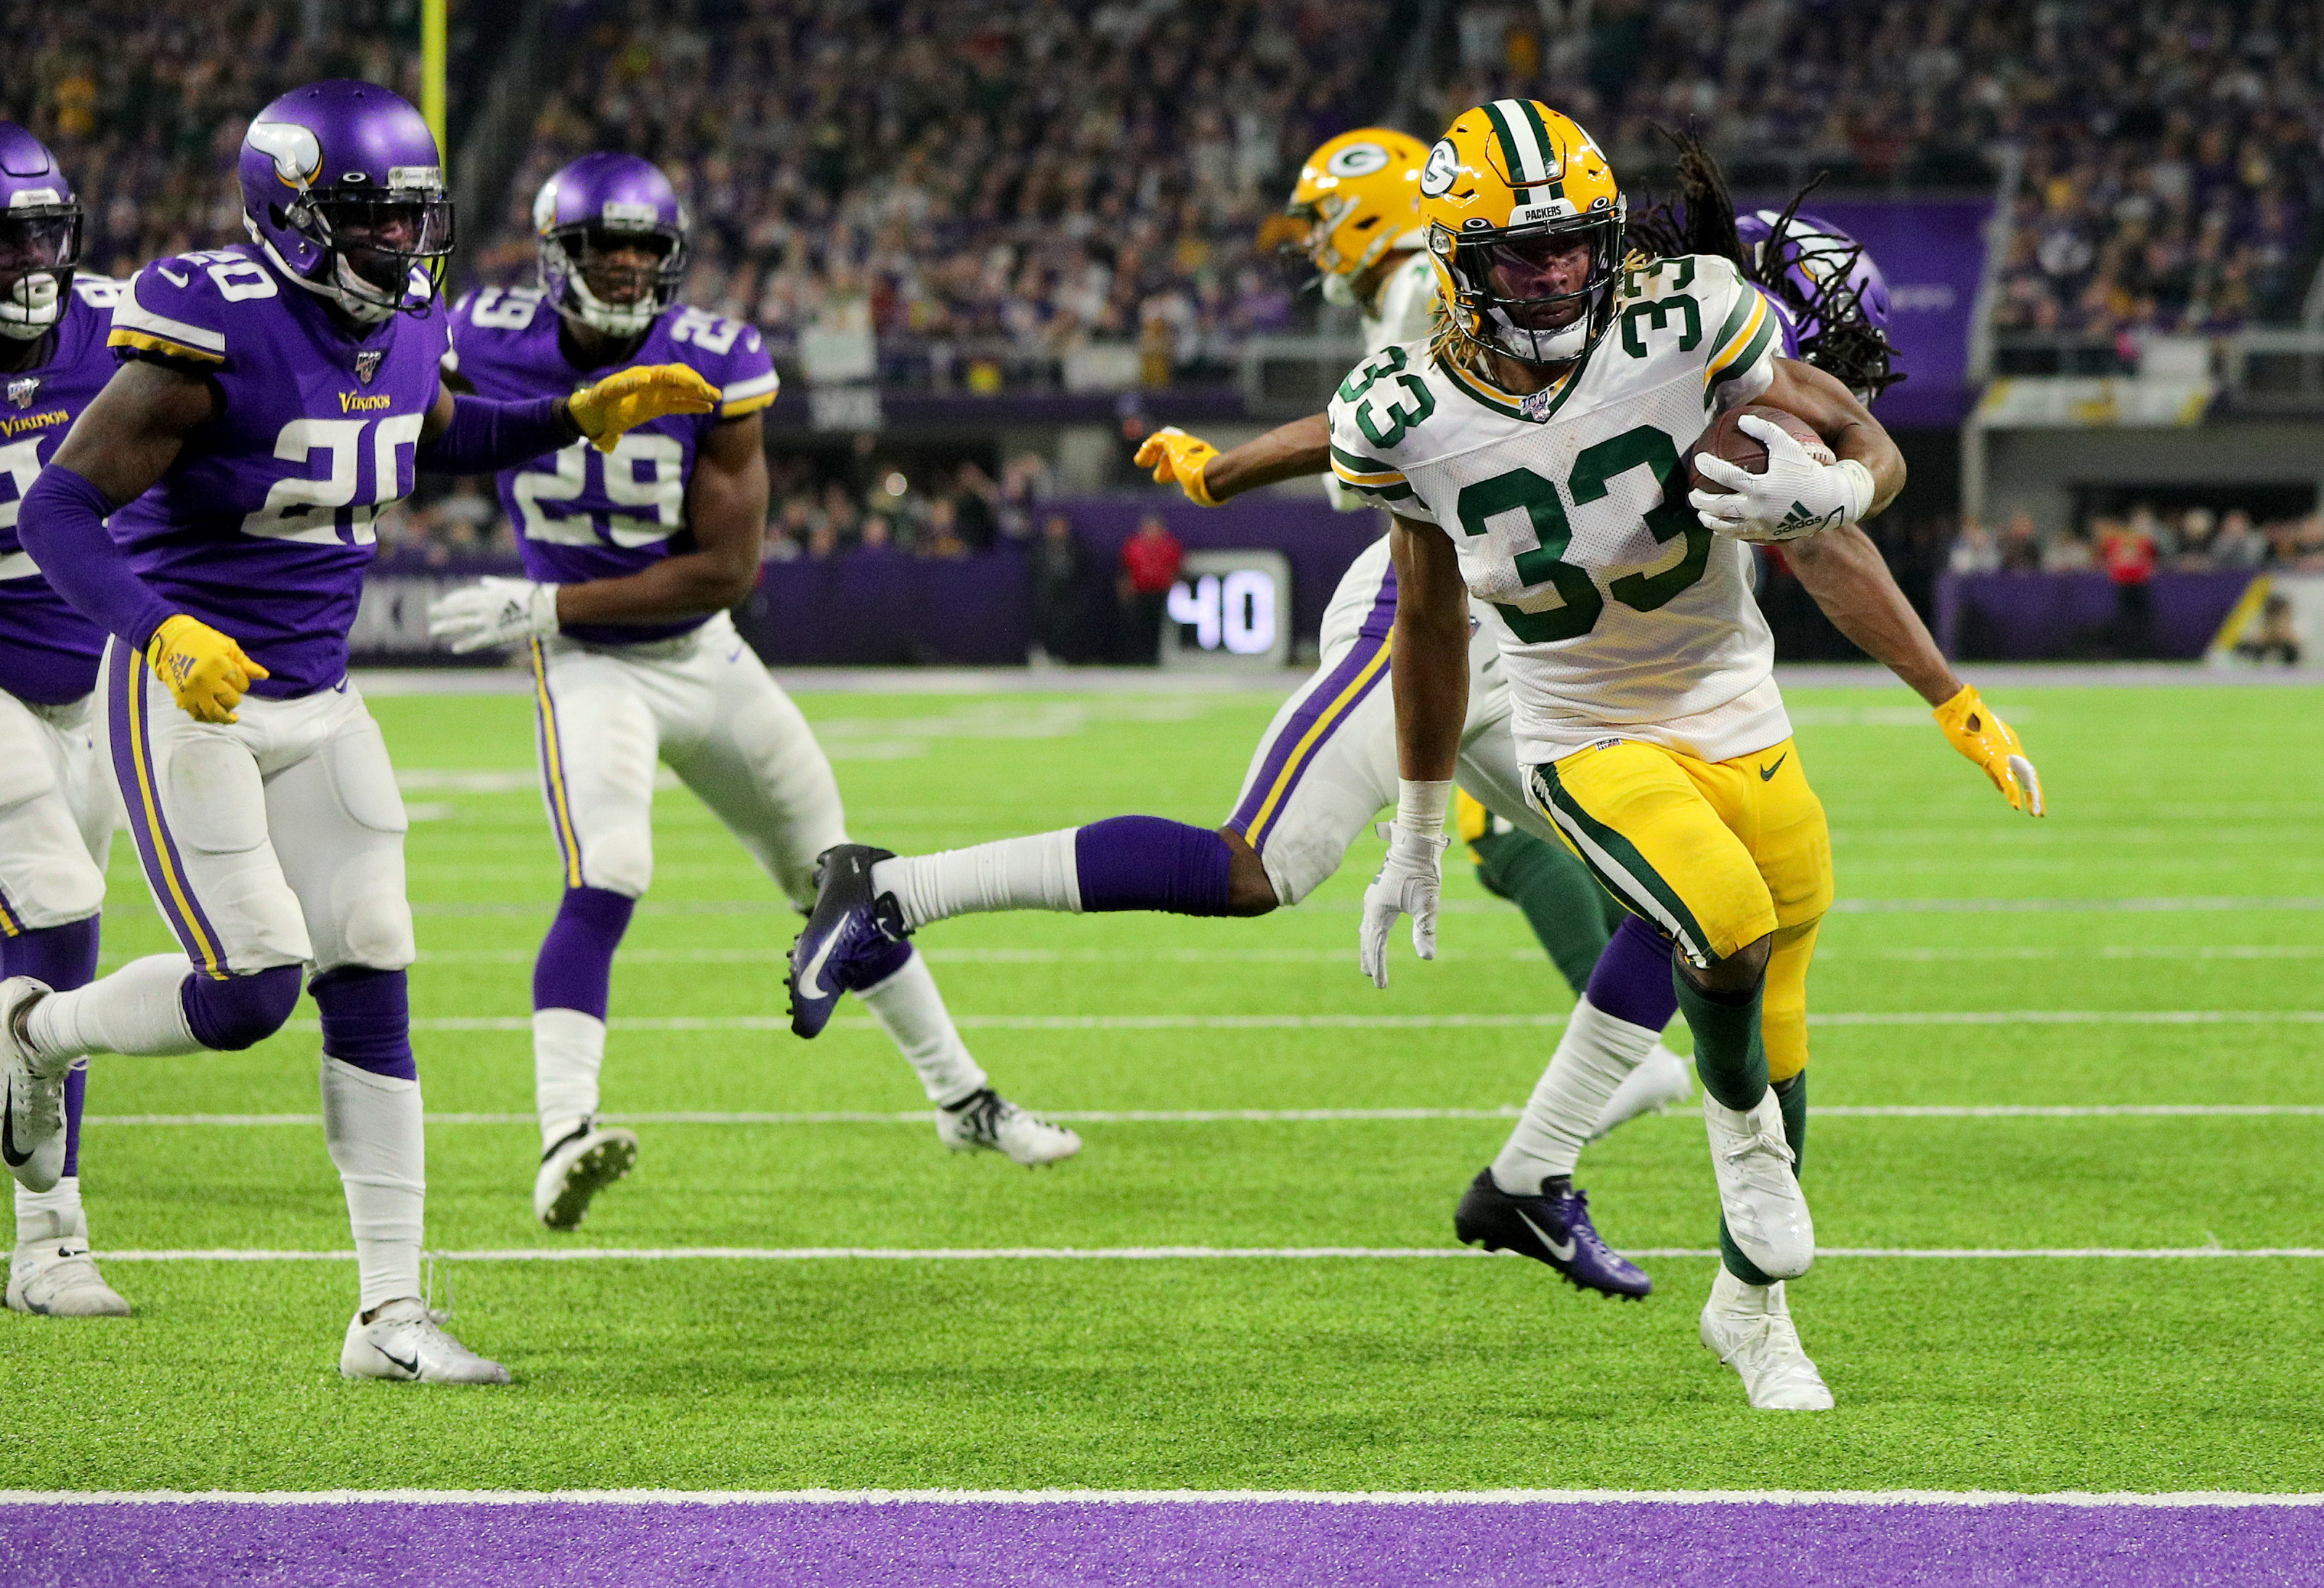 Packers vikings betting predictions nba ig spread betting login to gmail